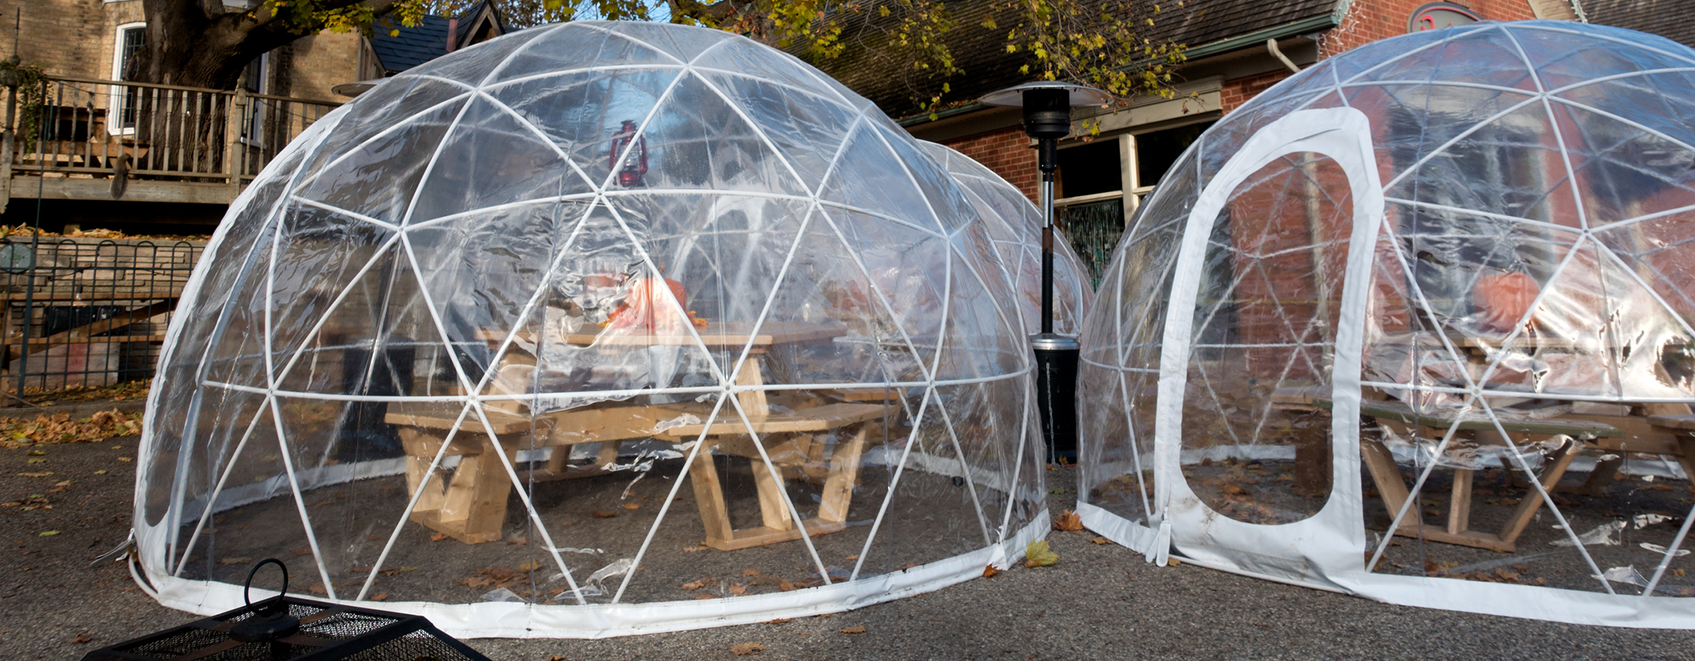 Outdoor dining tables, with clear bubble tents over them